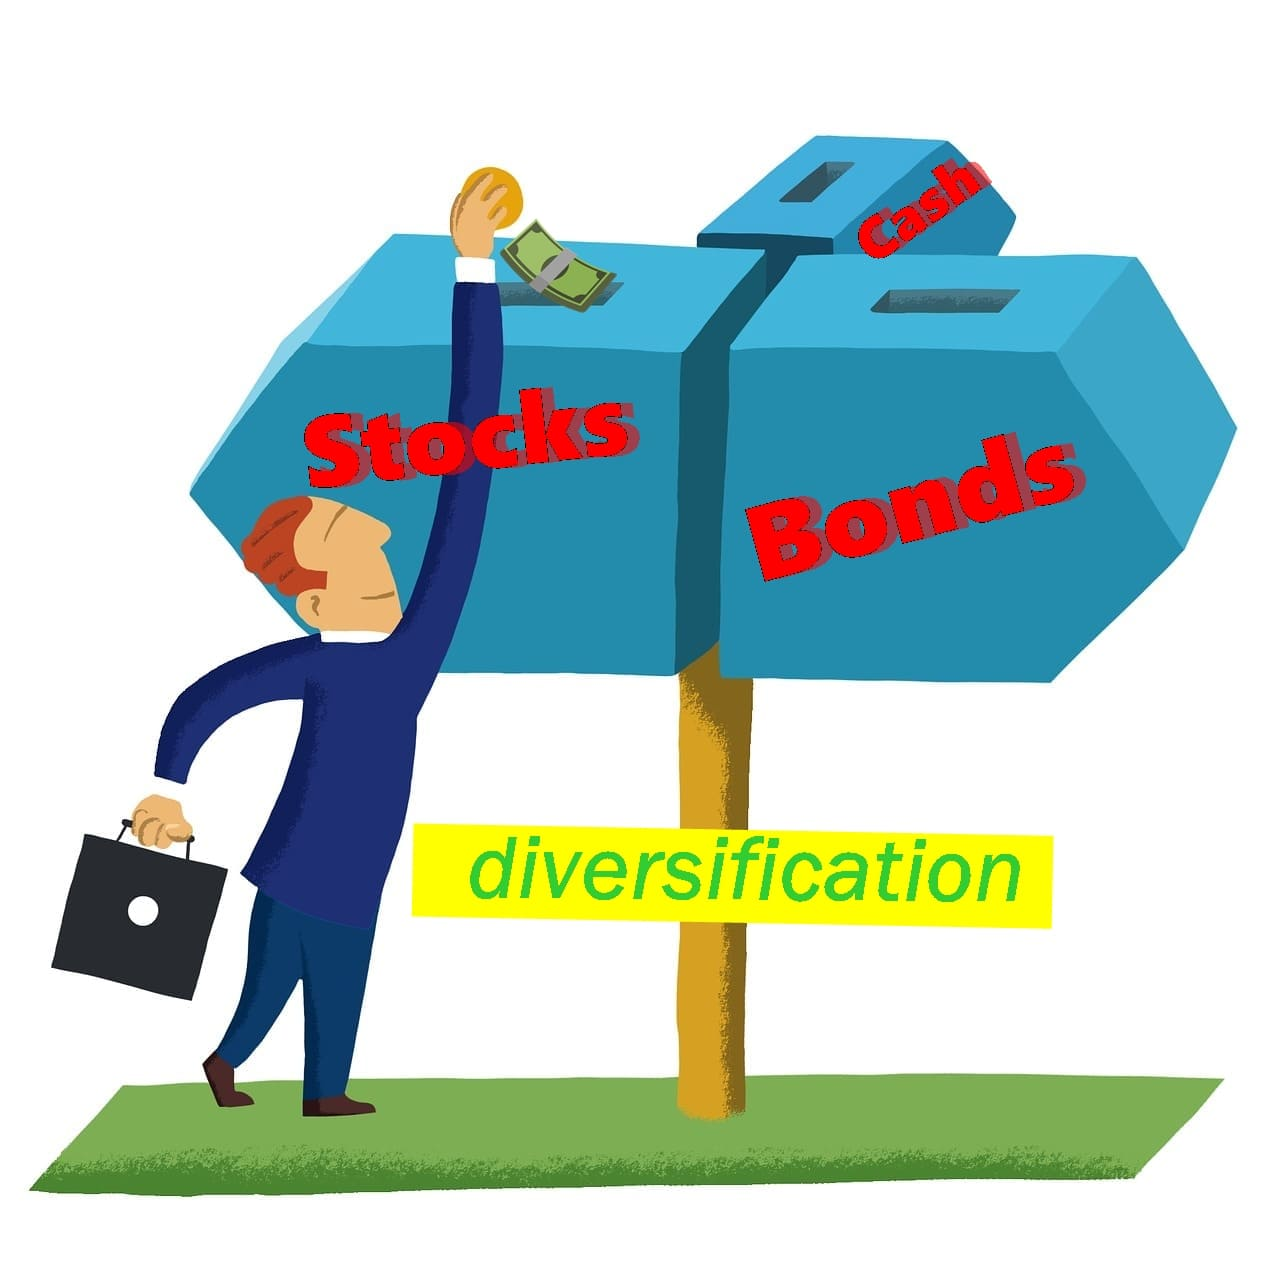 What does diversification mean and why it's important